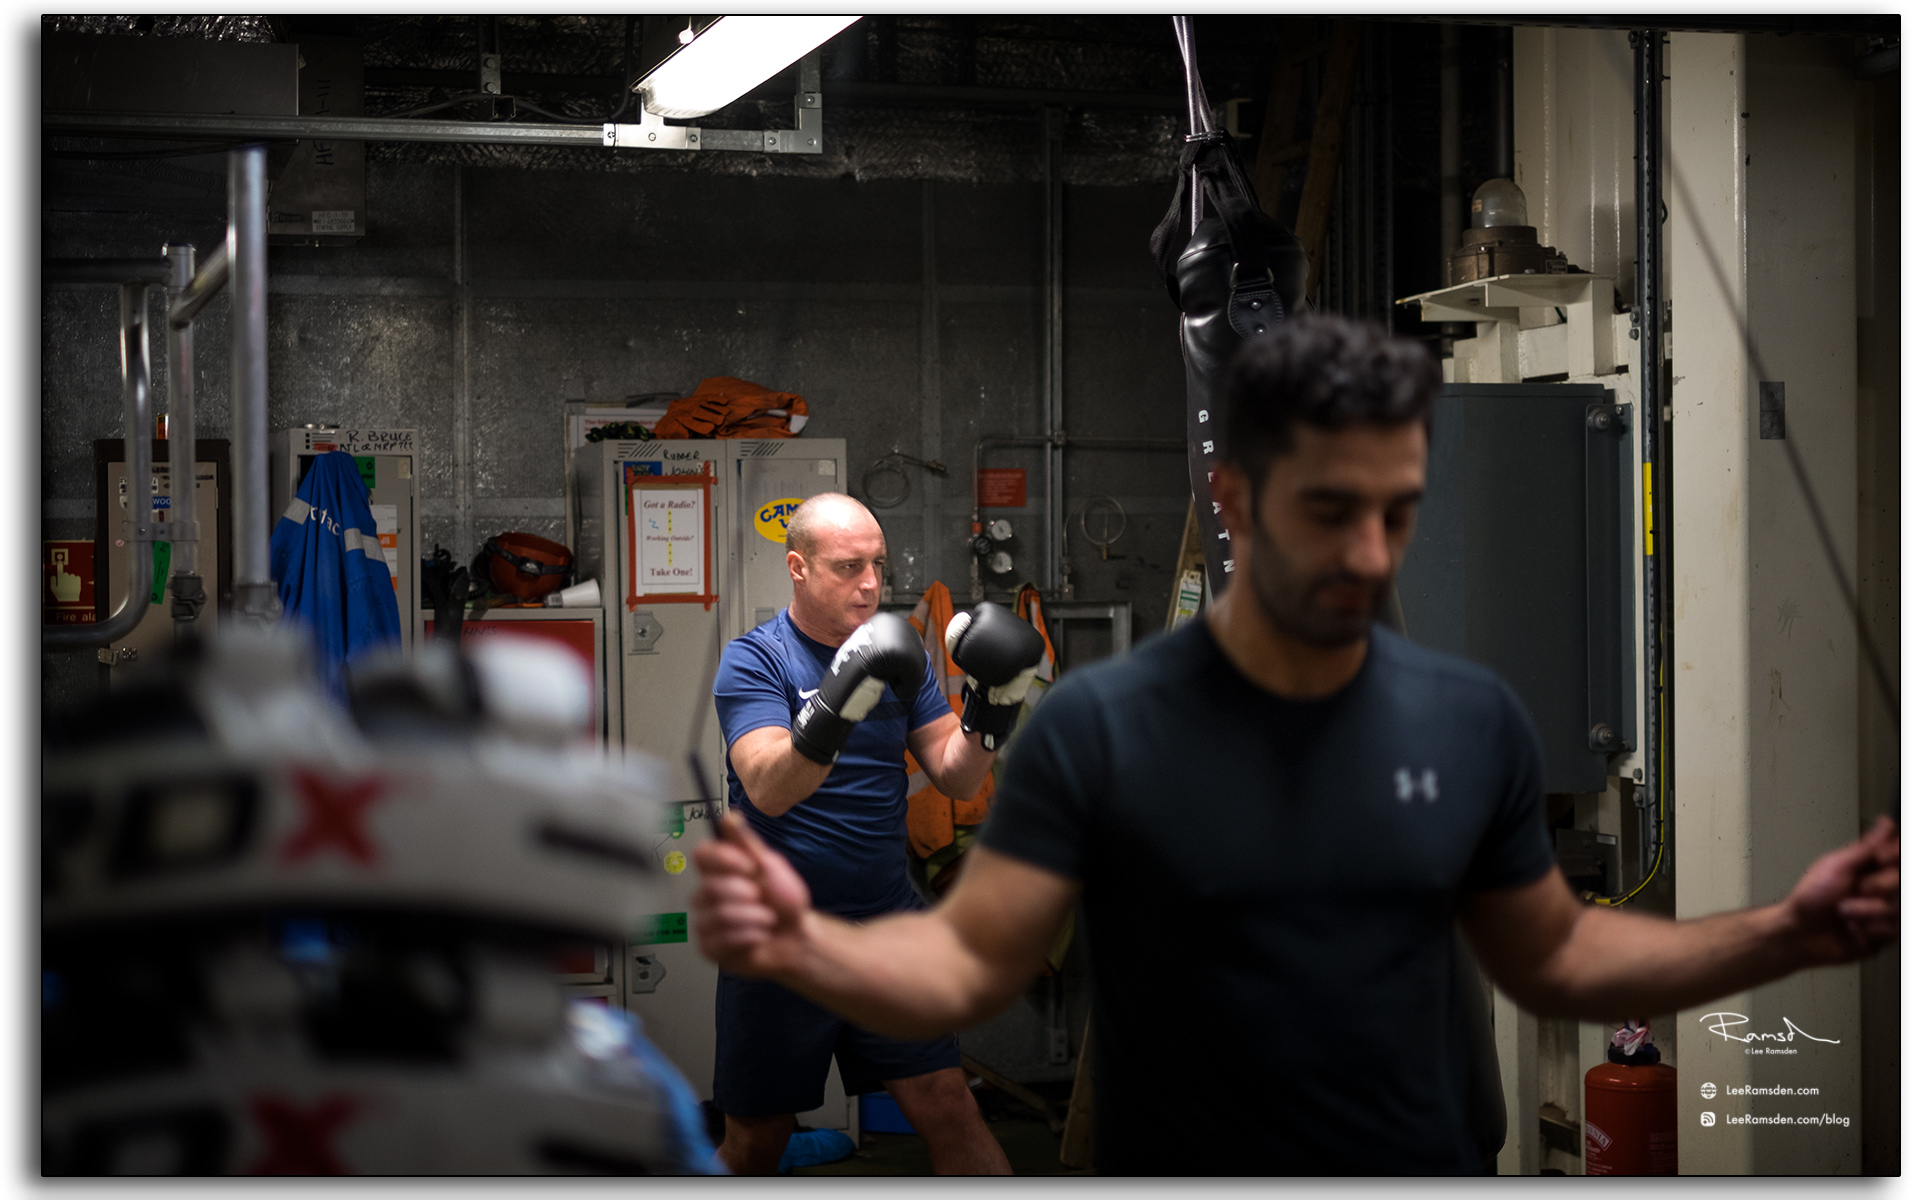 Boxing, Iain Hutton, yahia Imam, BP, Petrofac, offshore, fittness, sports, photo taken by, Lee Ramsden.